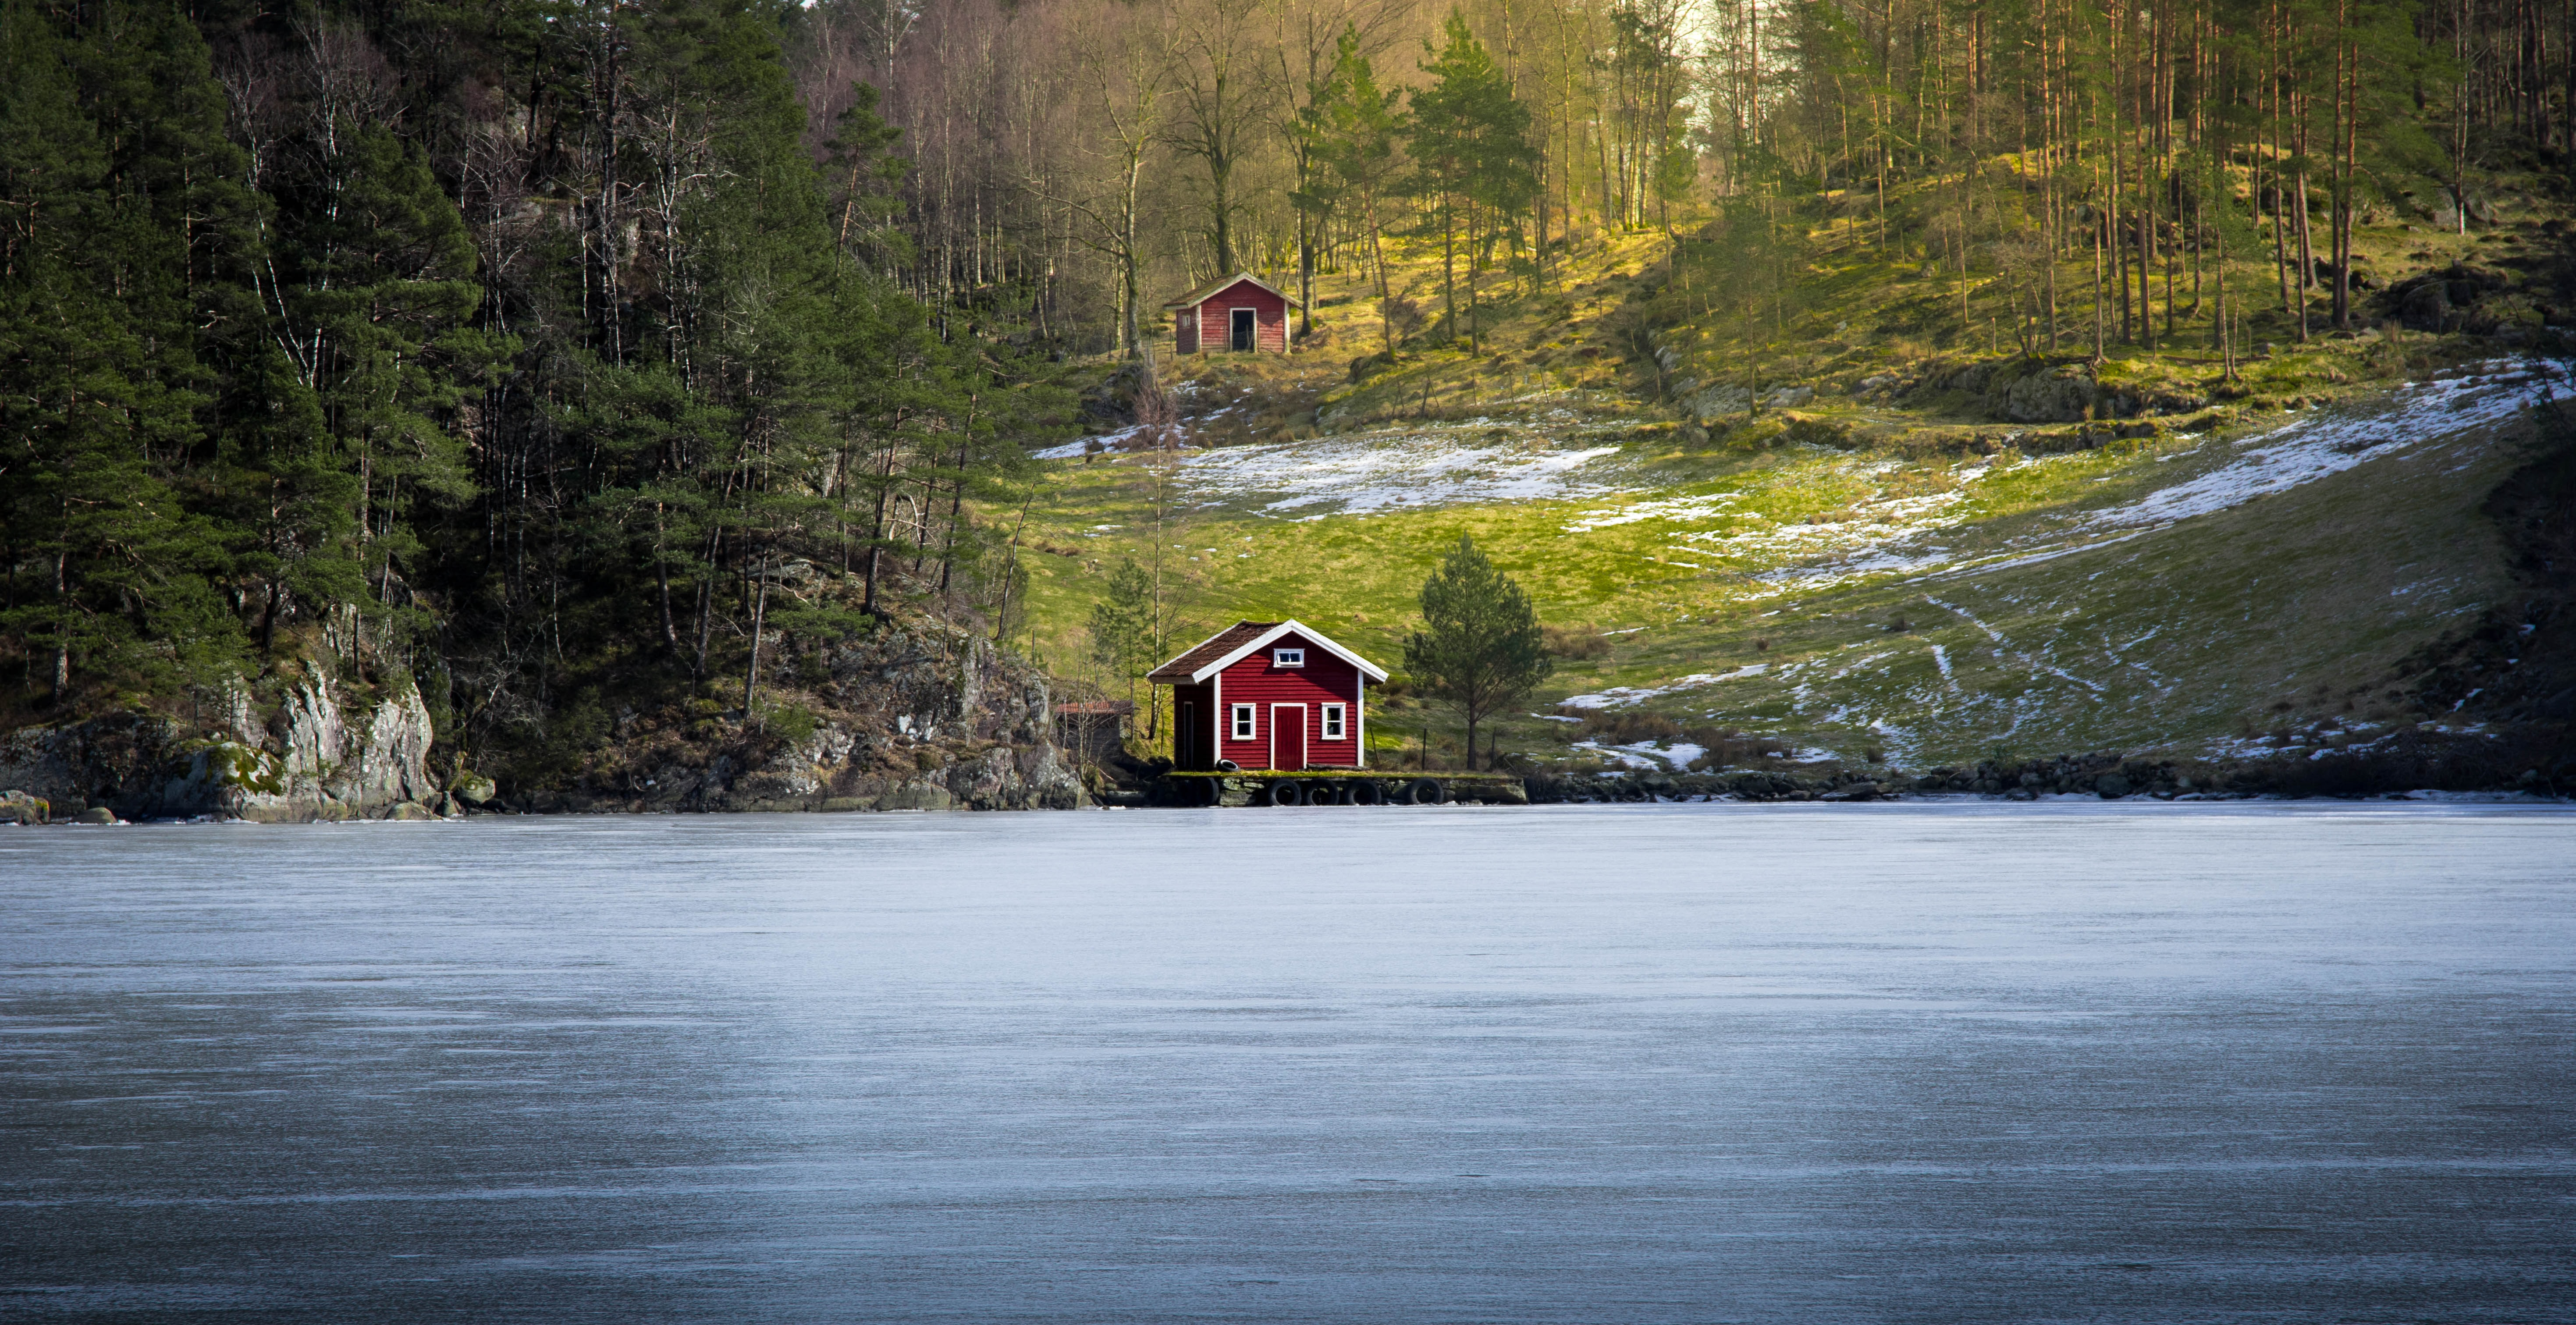 red house beside body of water surrounded by trees